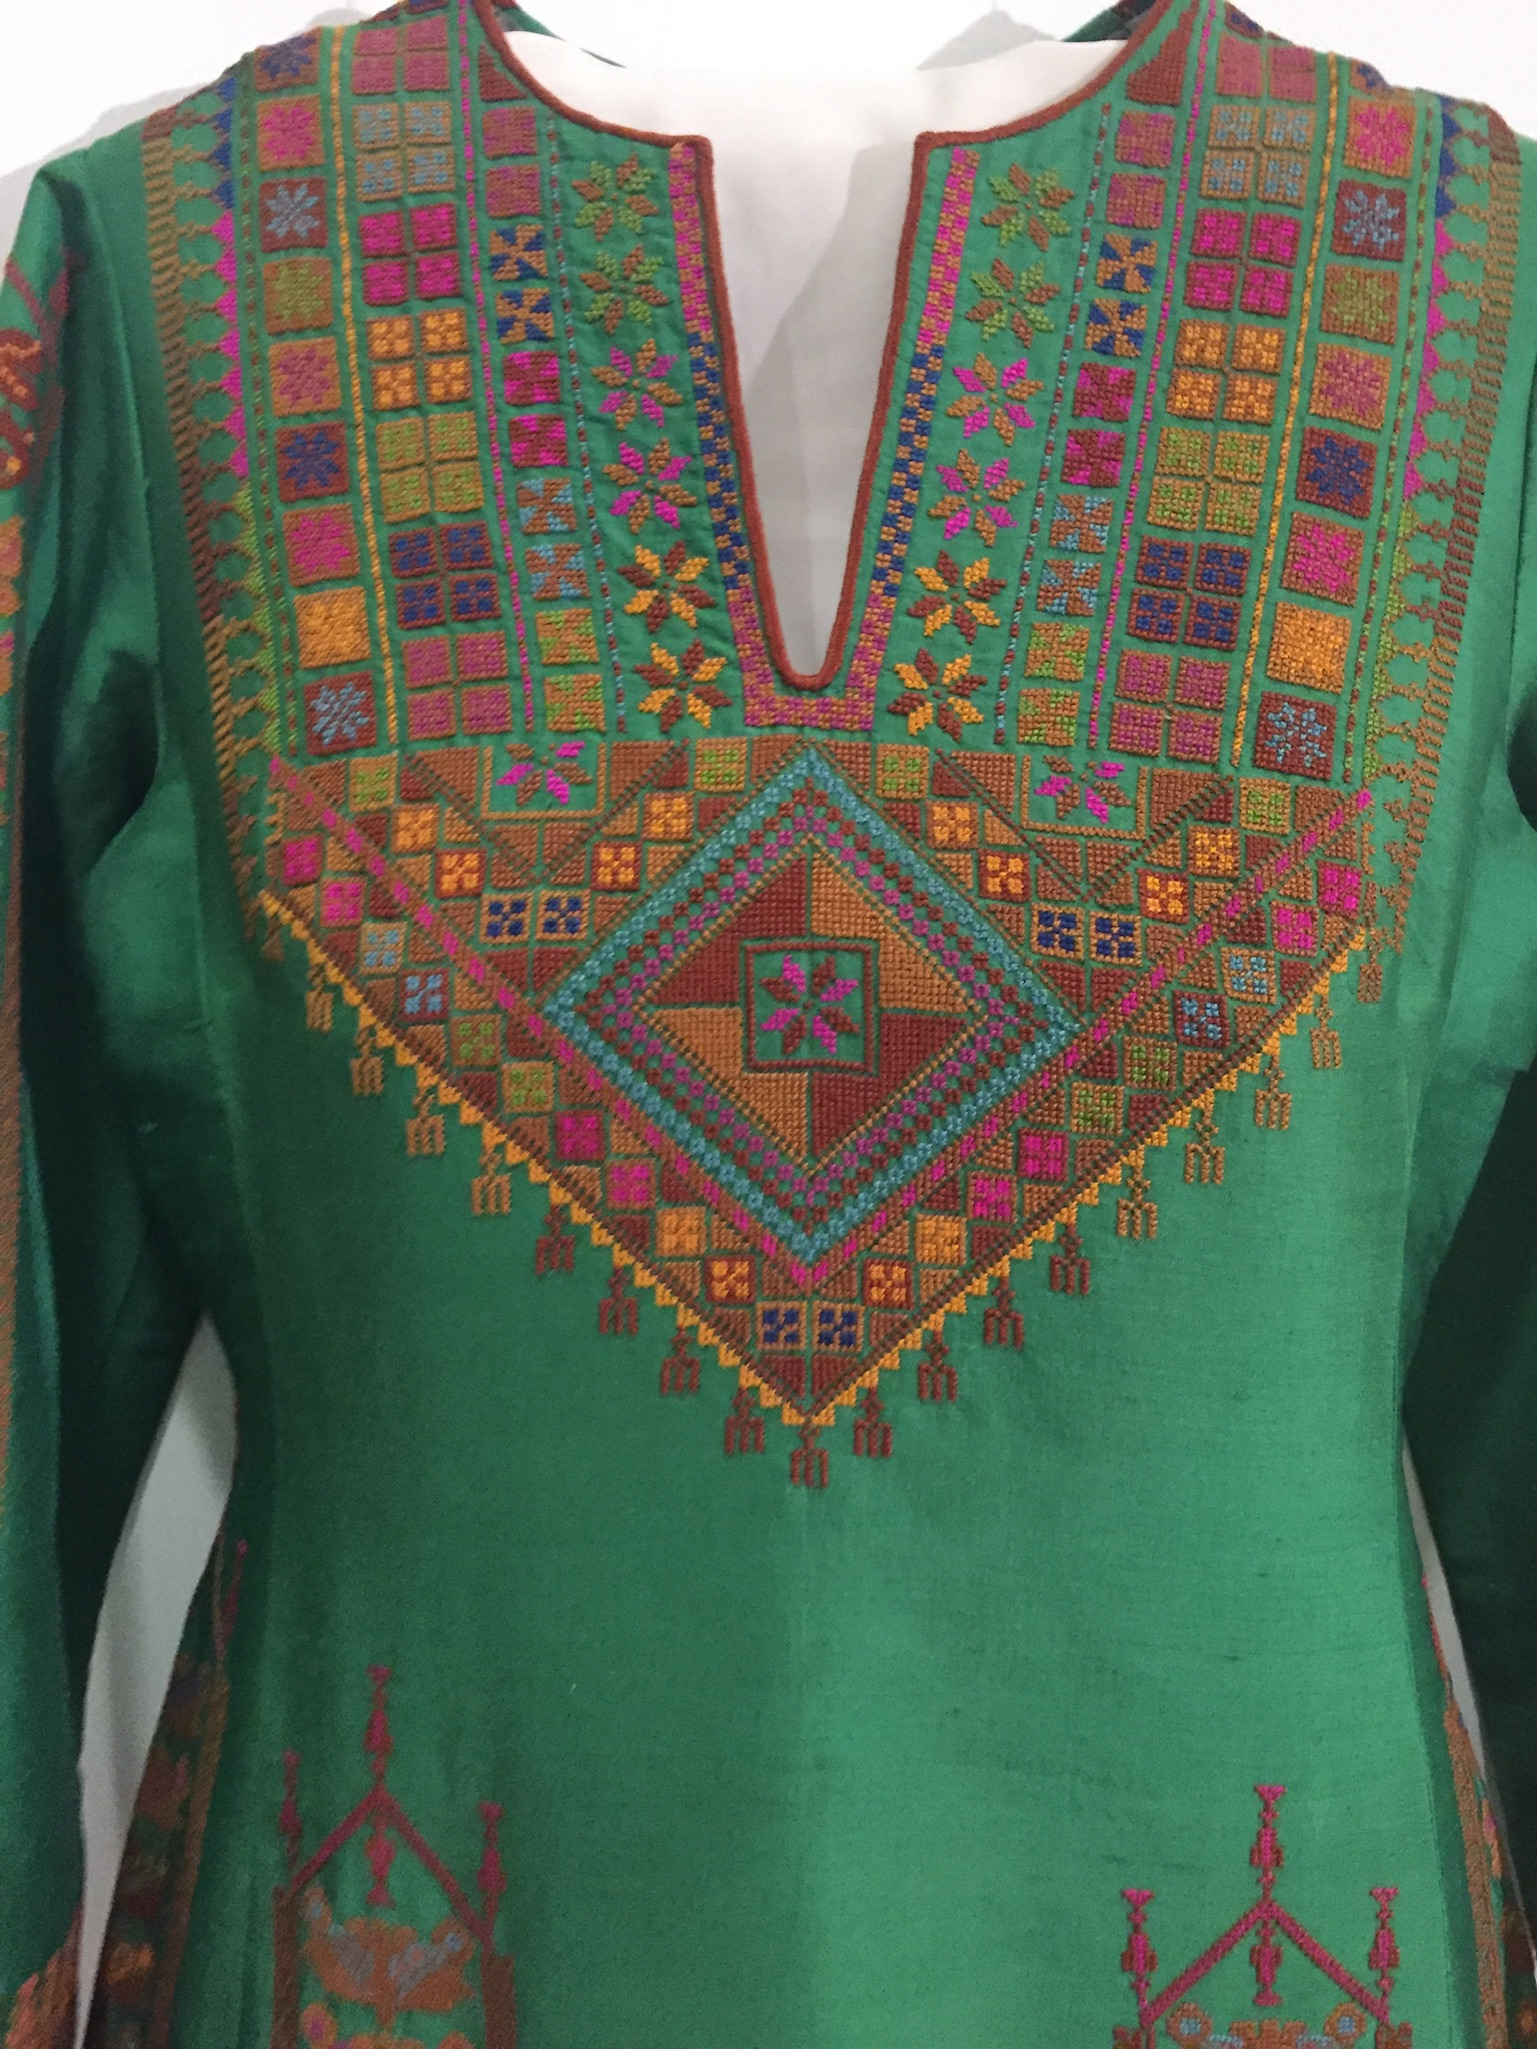 Thobe from the Collection of Mrs. Hala Salaam, 1970s